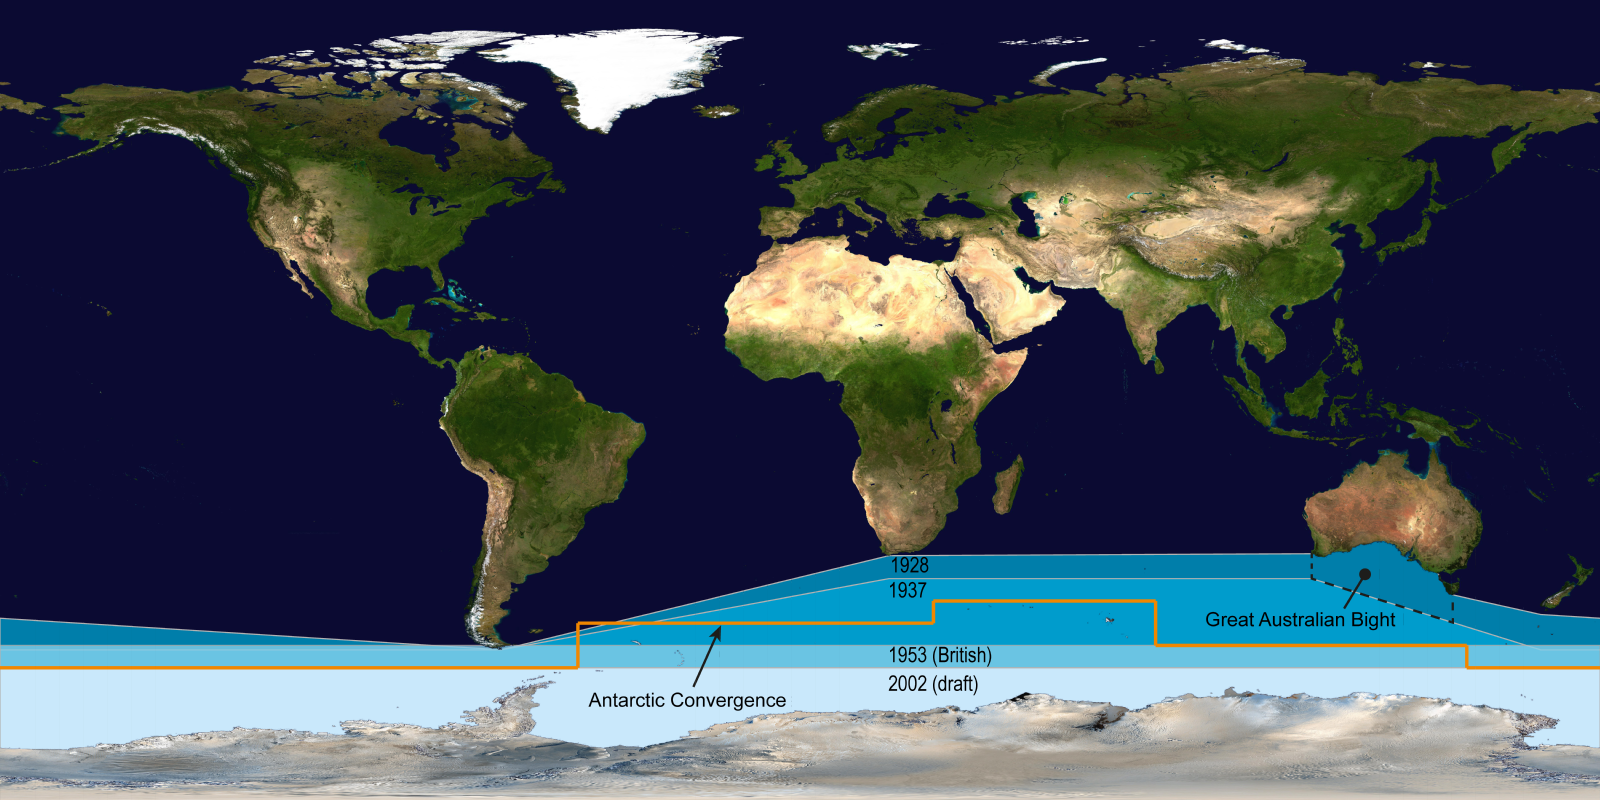 The International Hydrographic Organizations Delineation Of Southern Ocean Has Moved Steadily Southwards Since